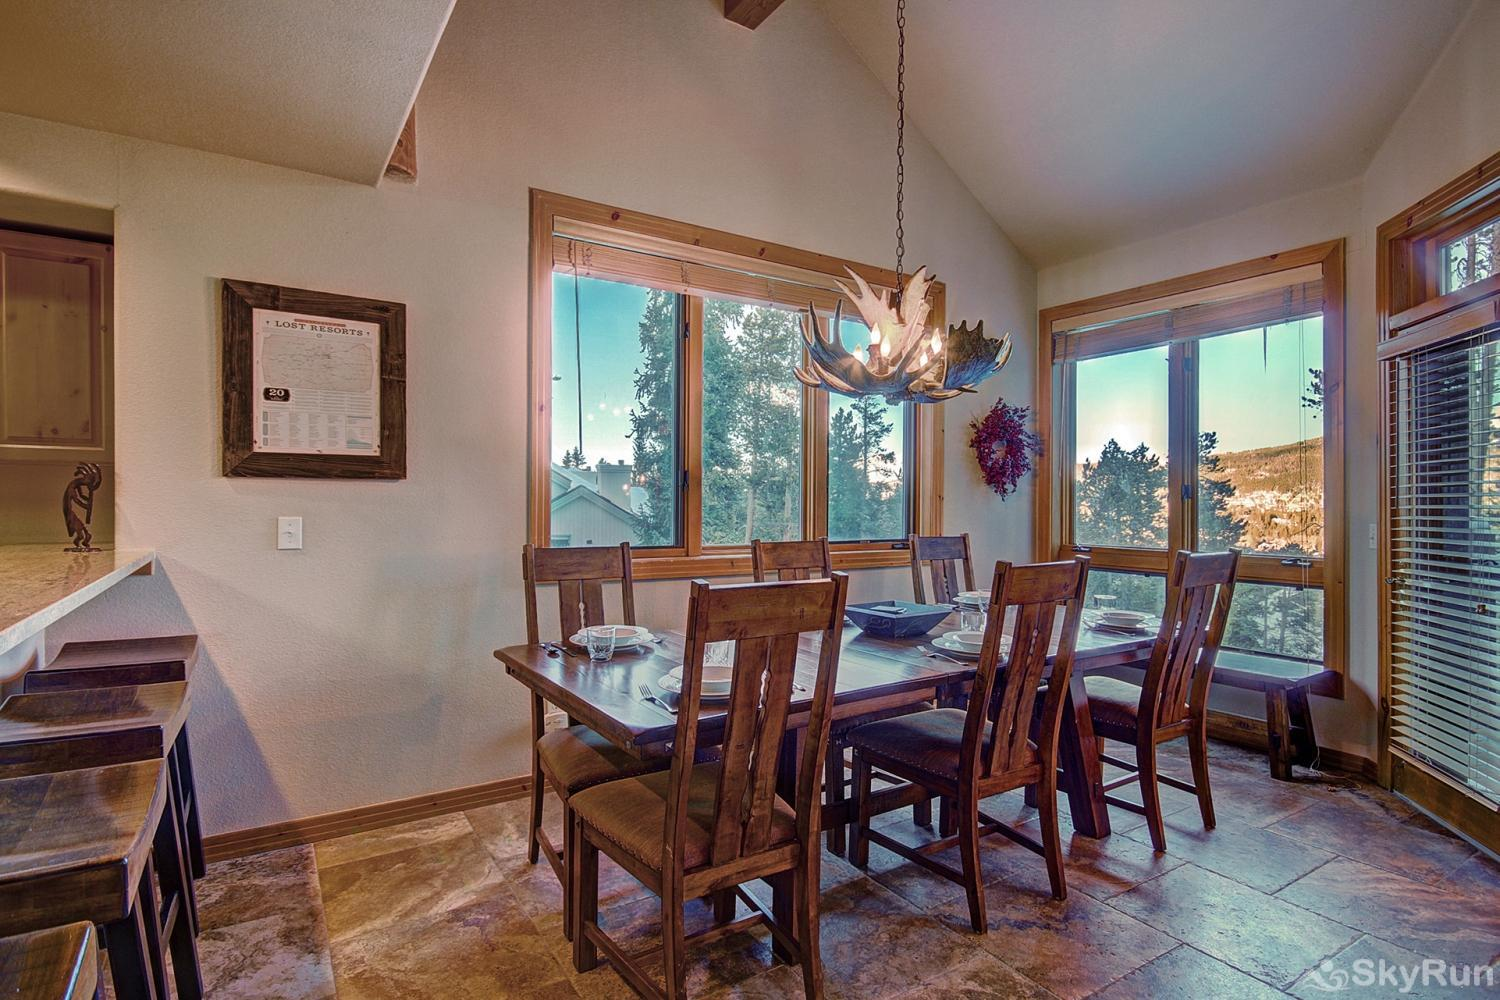 Elk Ridge Retreat Seating for 4 at counter top, 8-10 at dining table